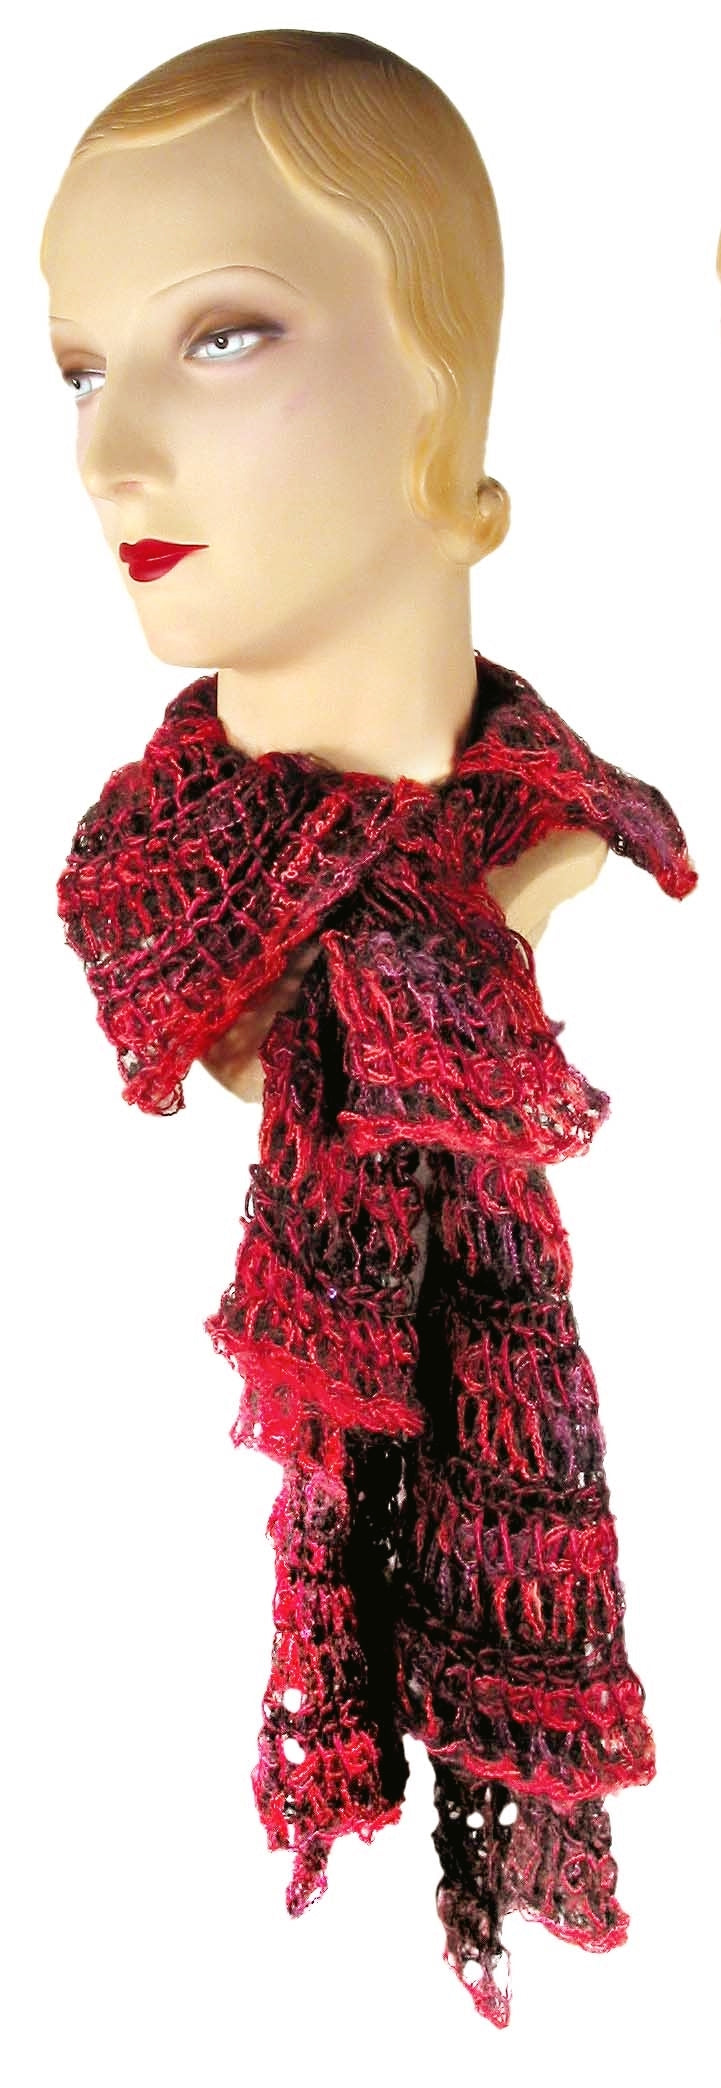 Falling Layers Scarf - Hand Knitted